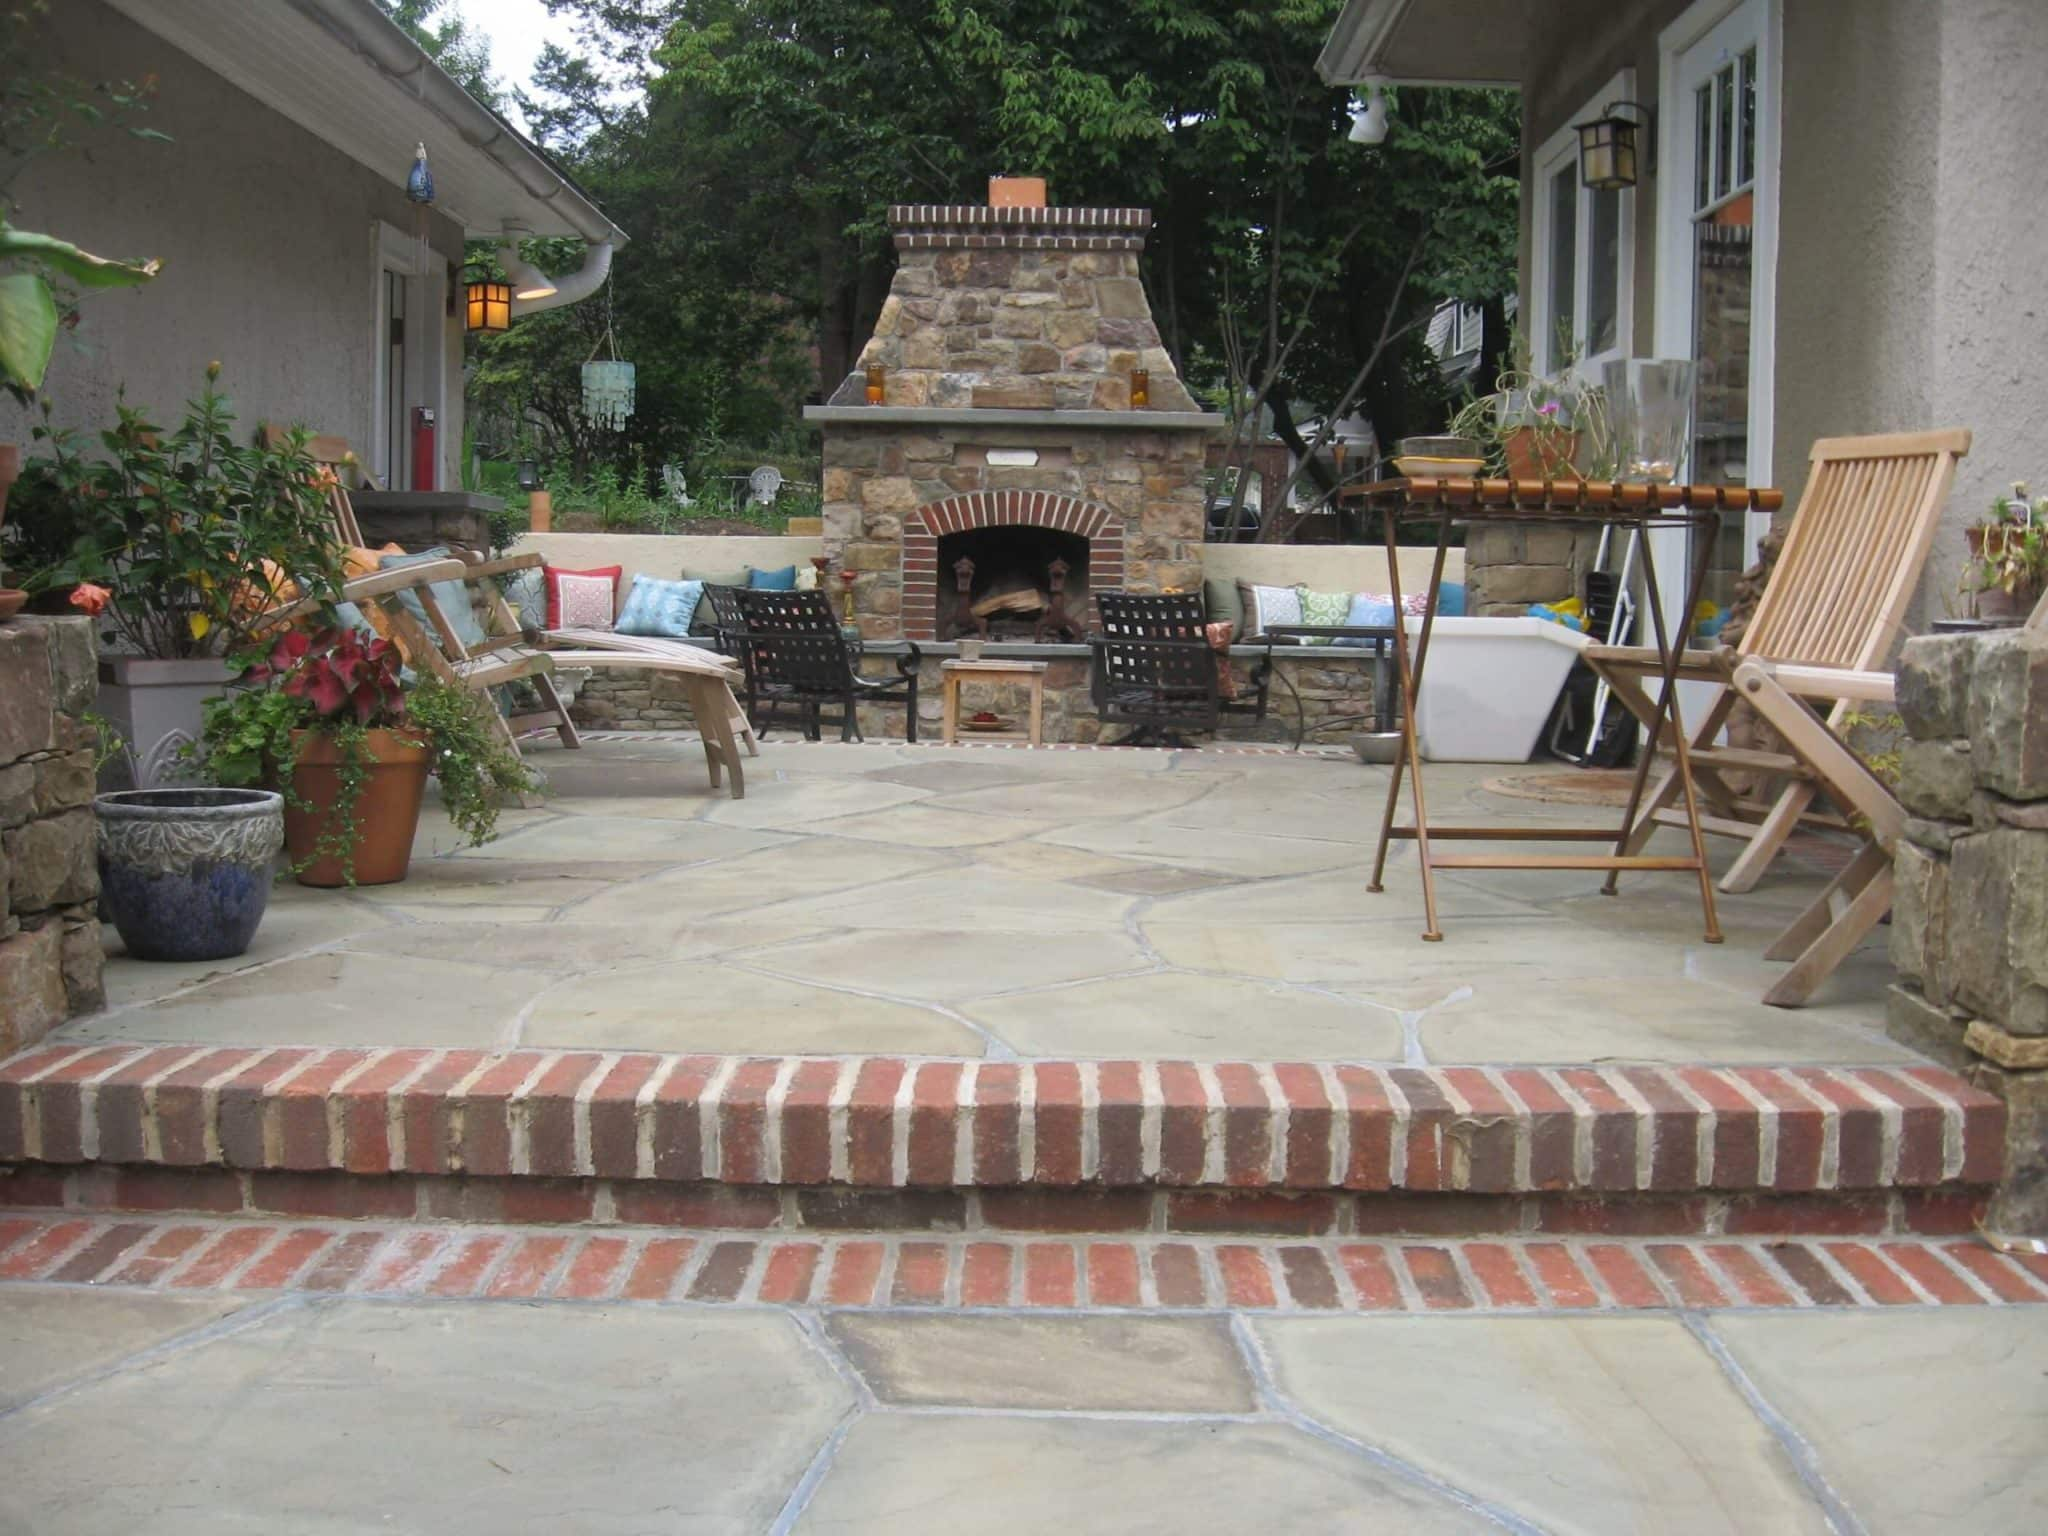 8 Flagstone Patio and Courtyard with Stone Fireplace and Brick Accents